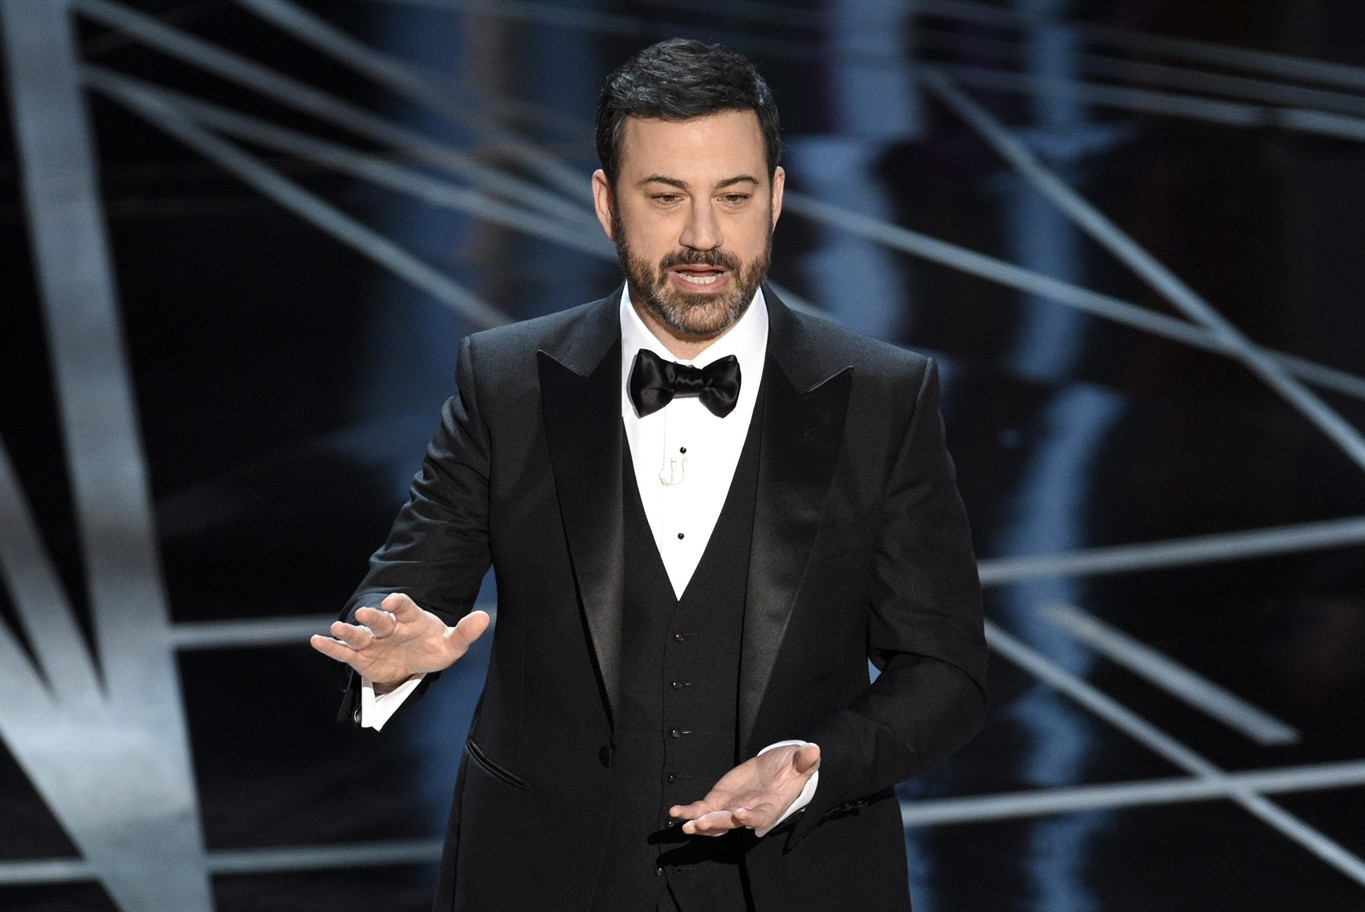 Oscars producer: Expect envelope jokes galore from Kimmel